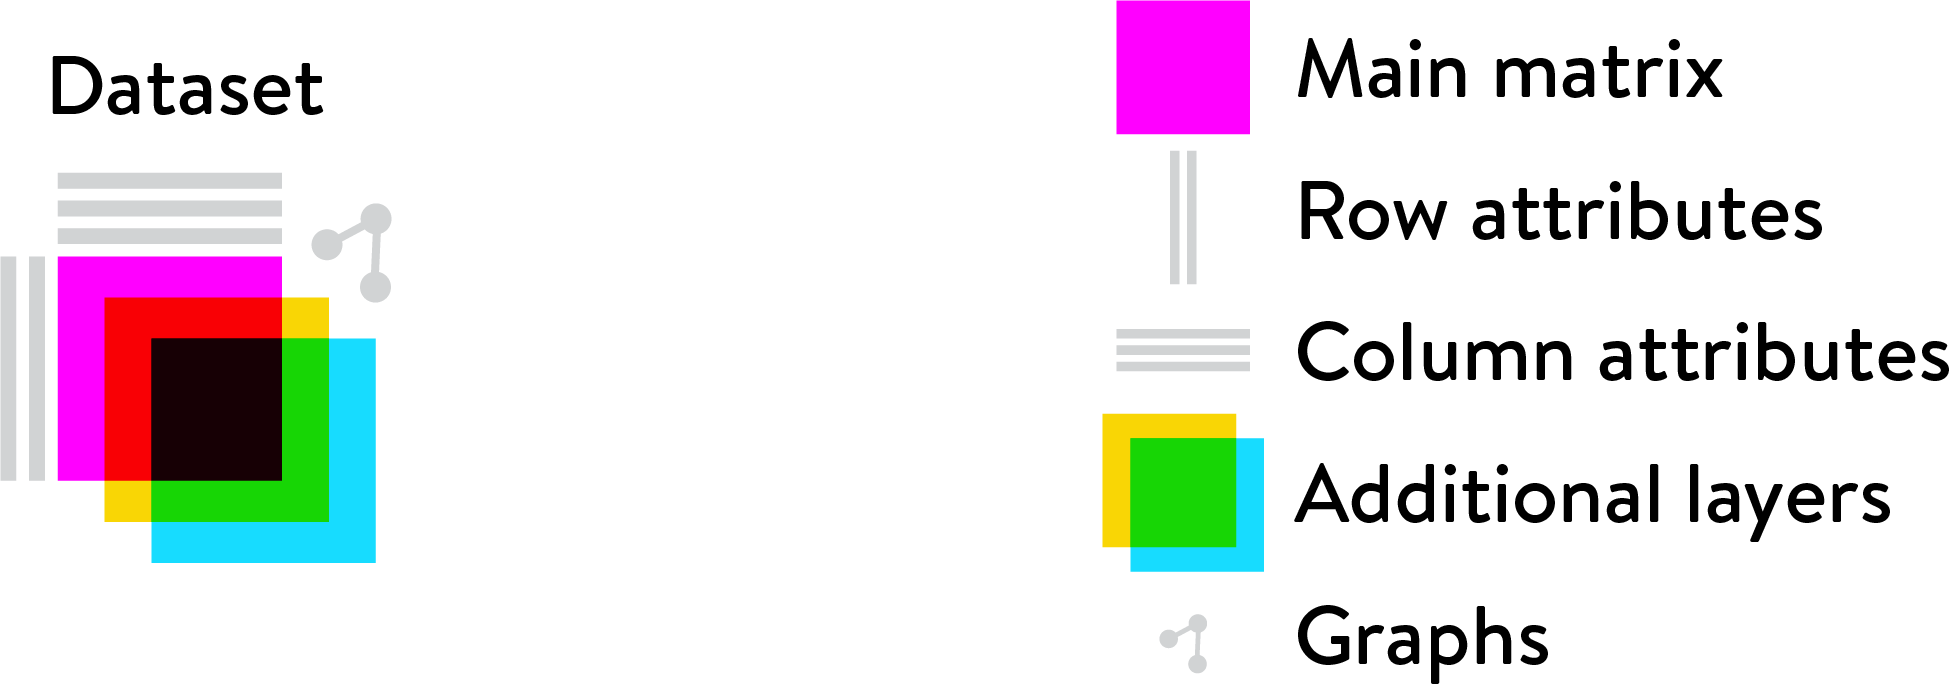 https://linnarssonlab.org/loompy/_images/Loom_components.png